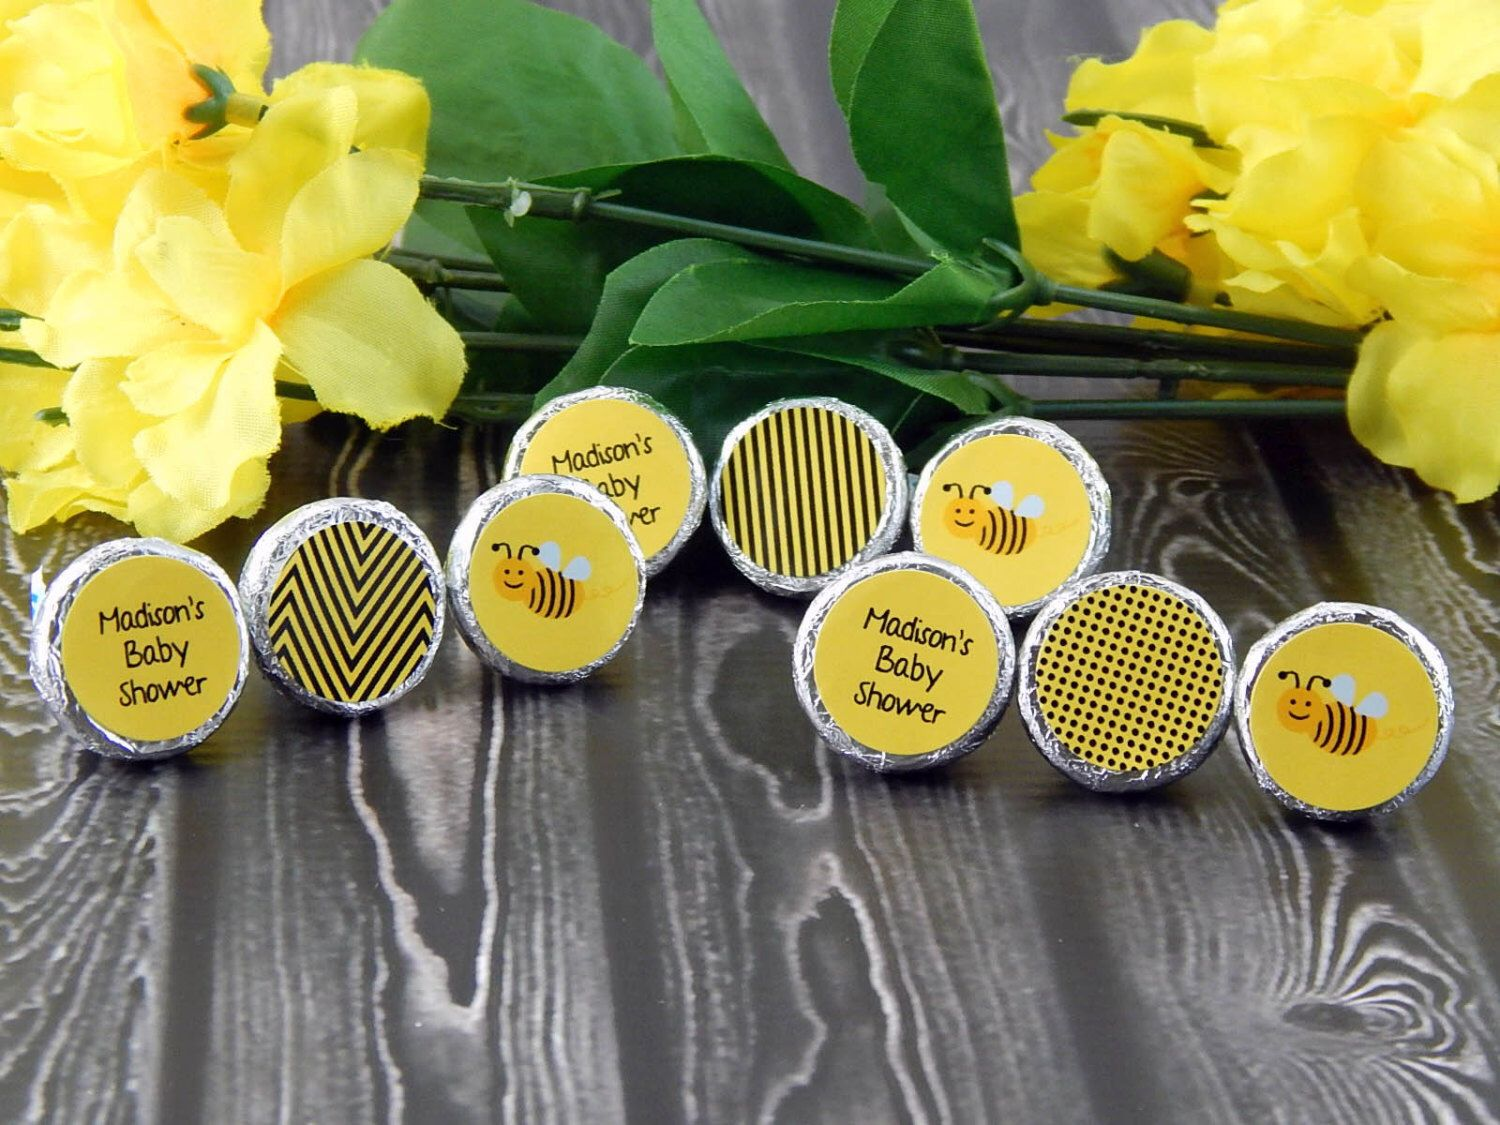 Bumble Bee Baby Shower Favors - Bumble Bee Party Favors - Bumble Bee Birthday Favors - Hershey® Kiss Stickers - 108 PRINTED Labels by PartyFavorsbyDesign on Etsy https://www.etsy.com/listing/247764348/bumble-bee-baby-shower-favors-bumble-bee